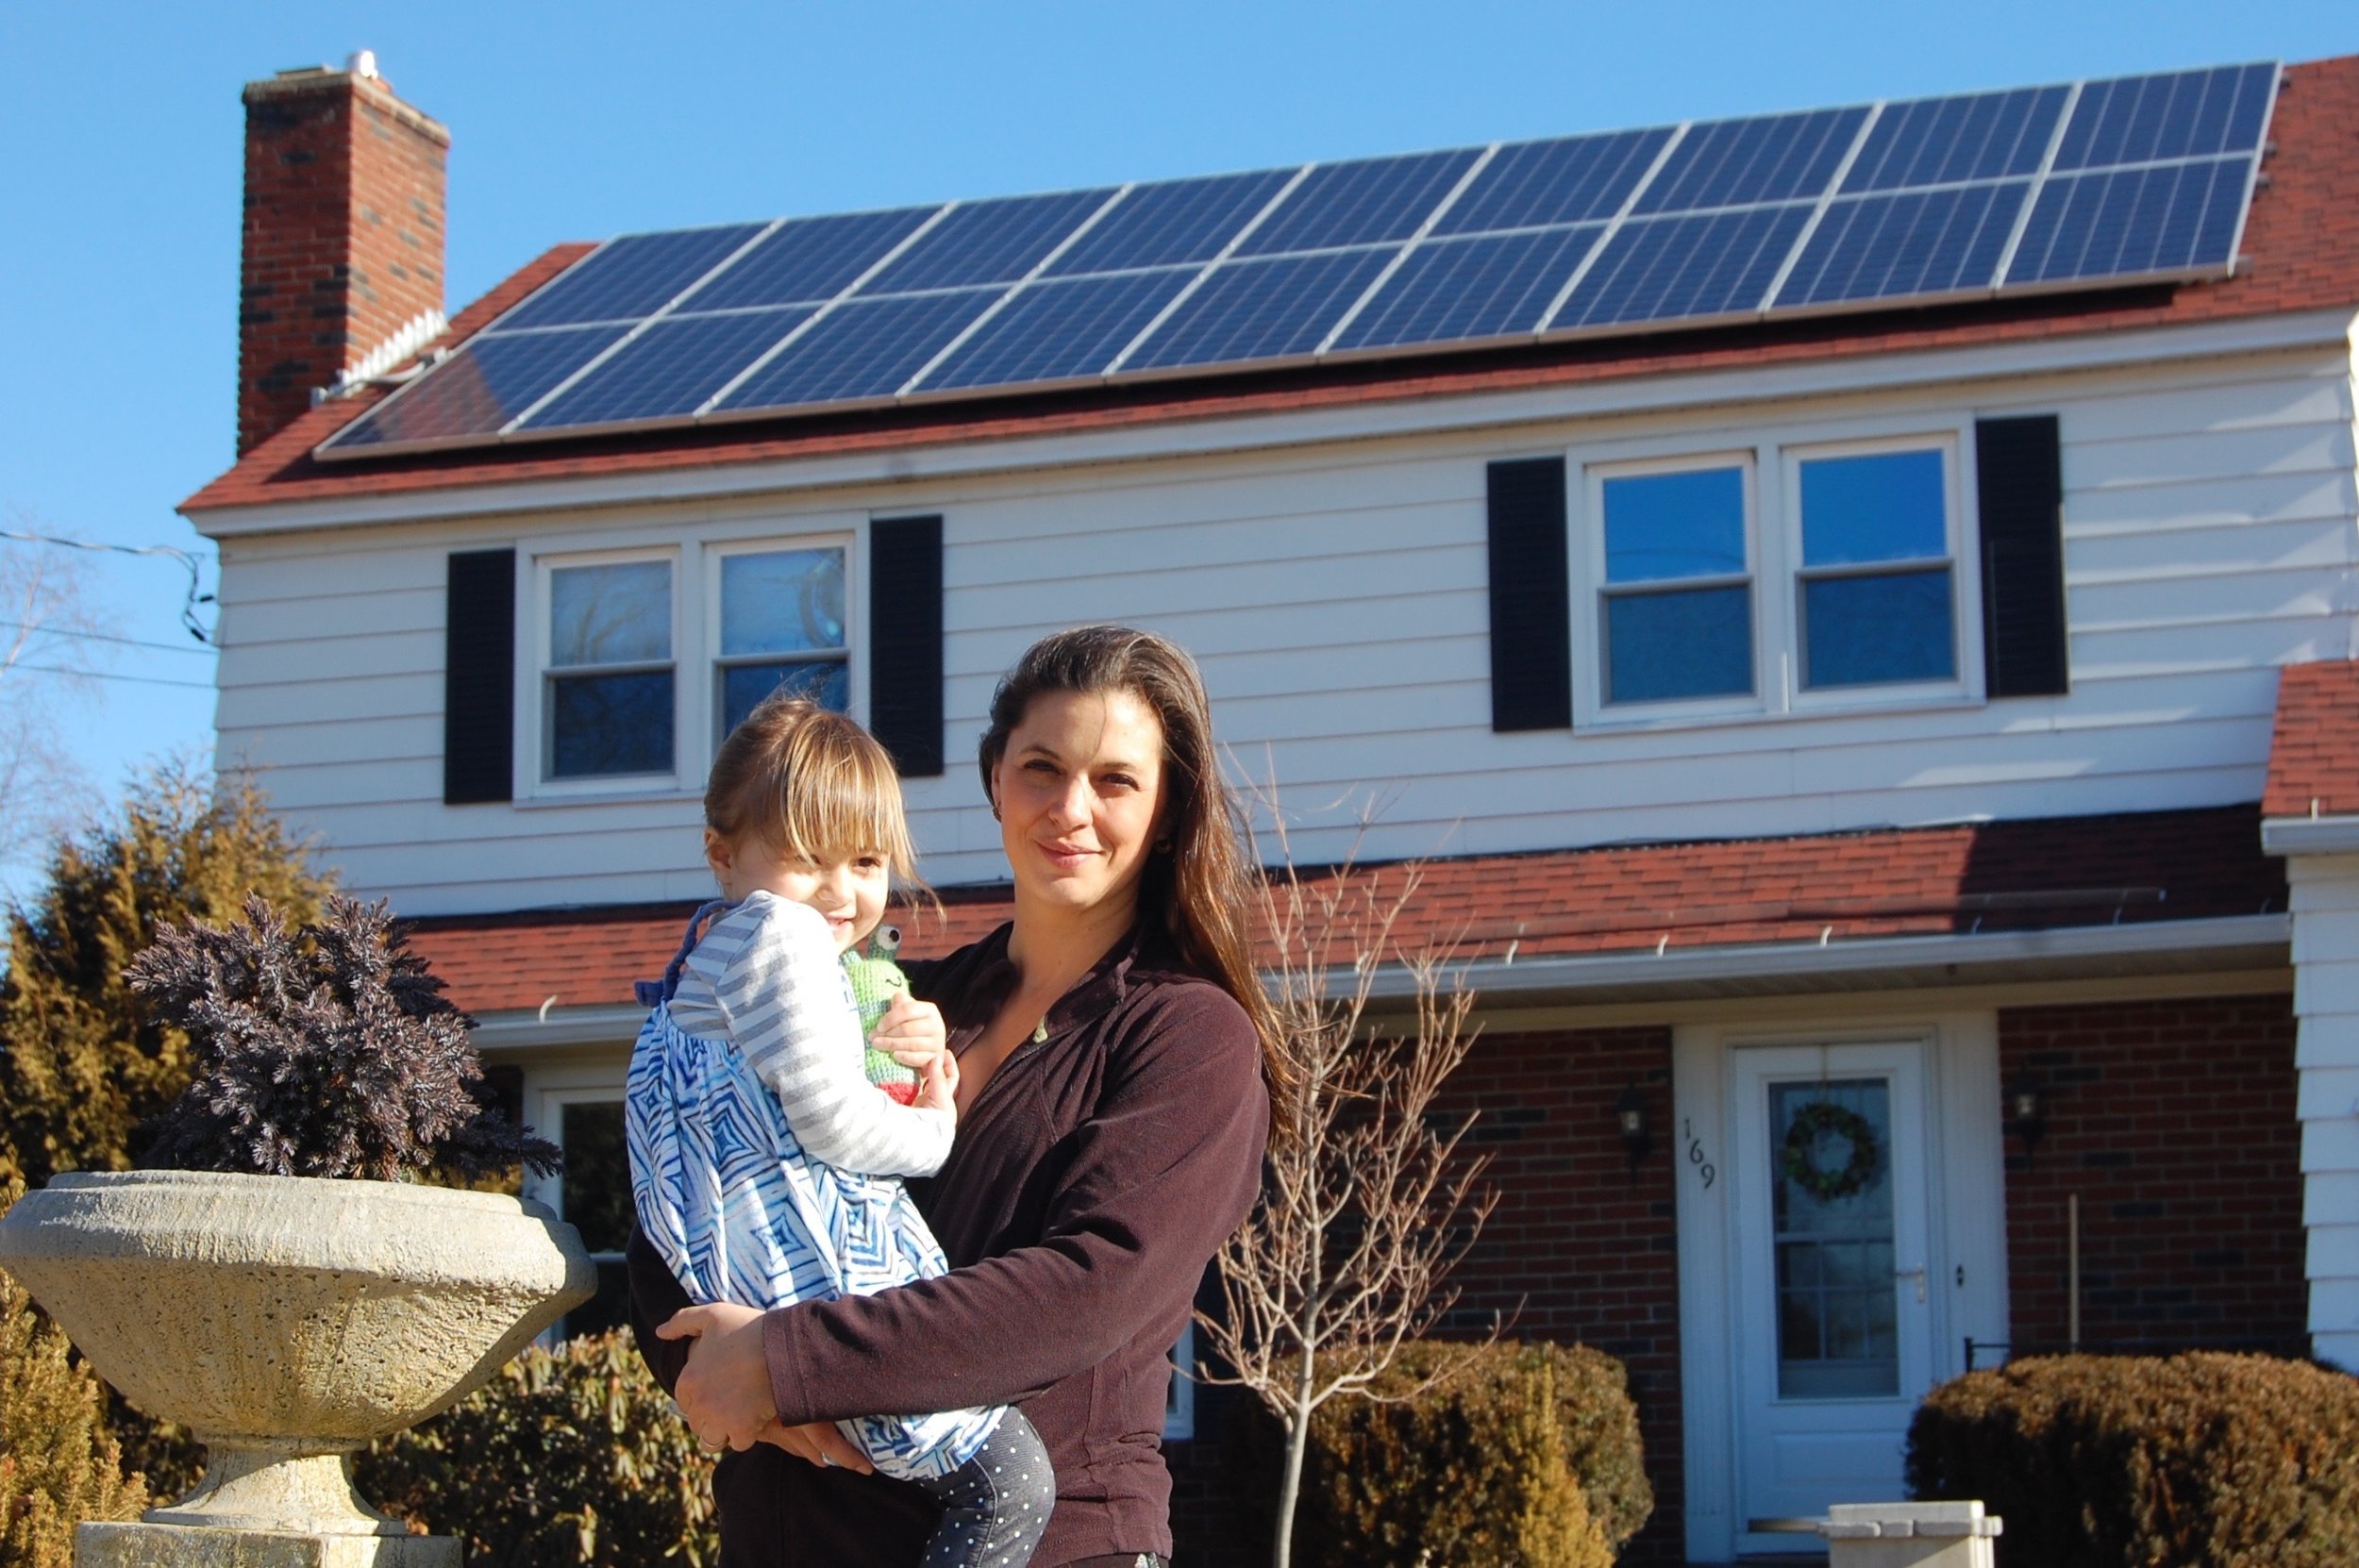 Serena Graham stands outside her Waterville home with her daughter, below the solar-electric system she had installed in the fall of 2015. The system is designed to generate enough power over the course of a year to offset the home's electric demand. Getting to net zero, she said, has always been her goal. Photo: David Angelini